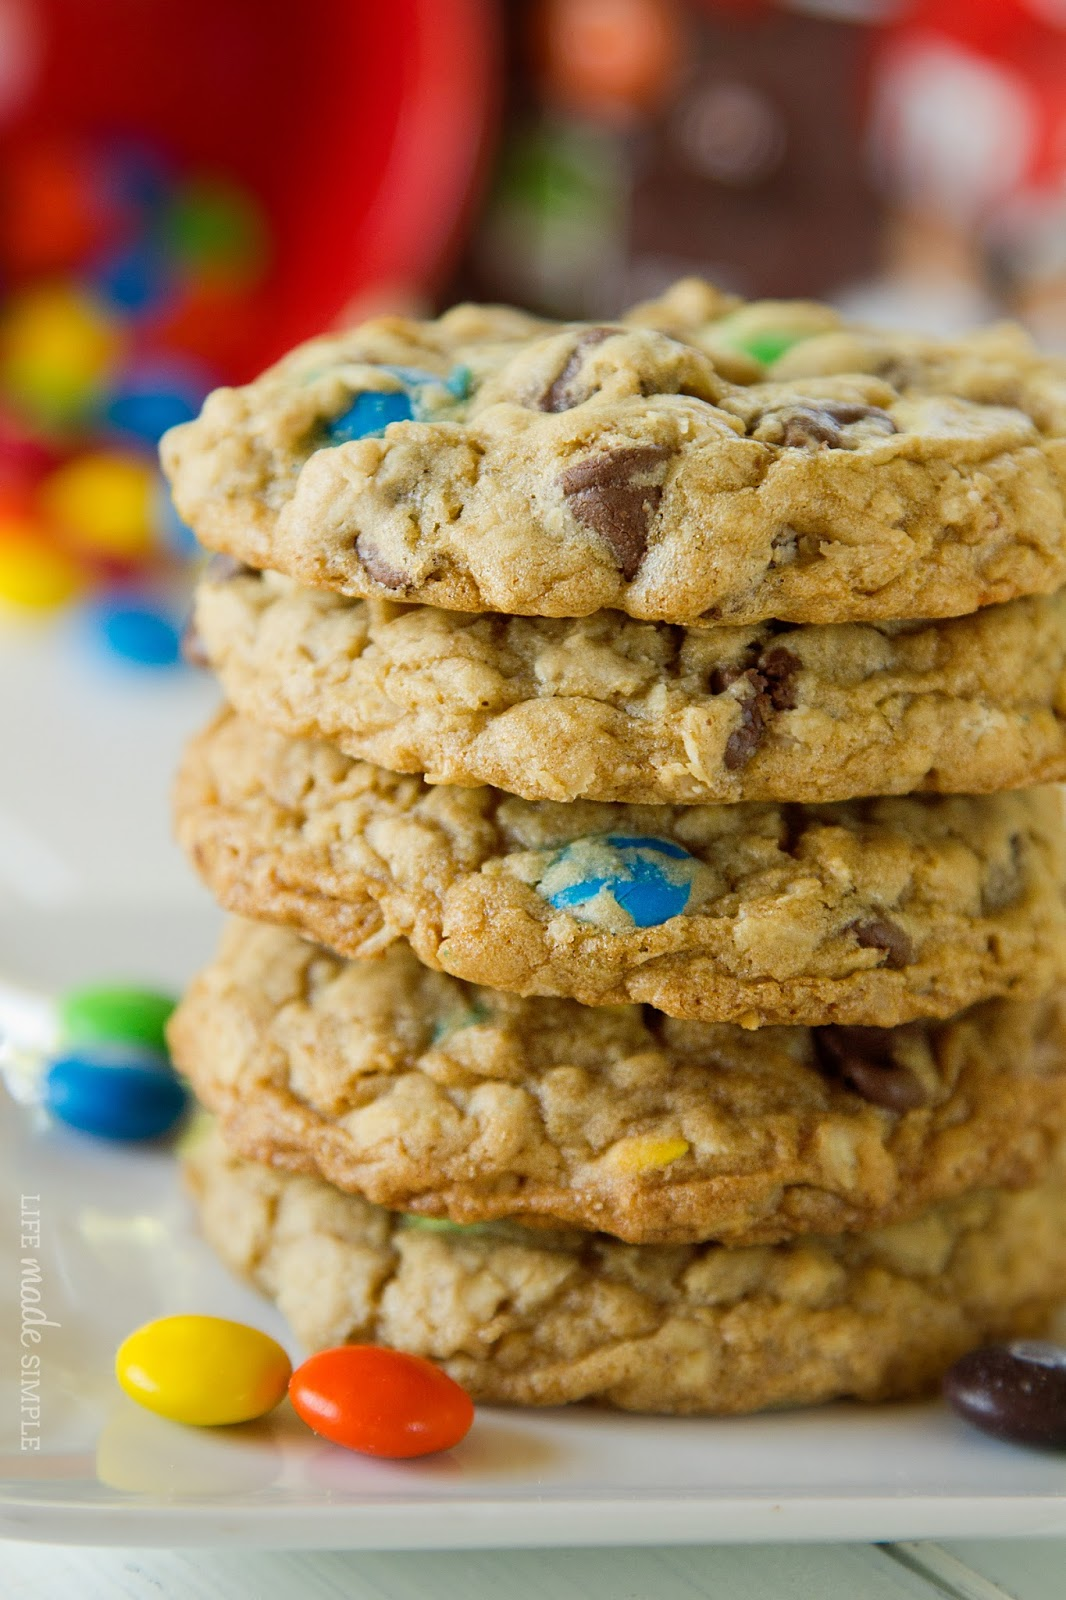 Chocolate Chip Oatmeal Cookies - Life Made Simple